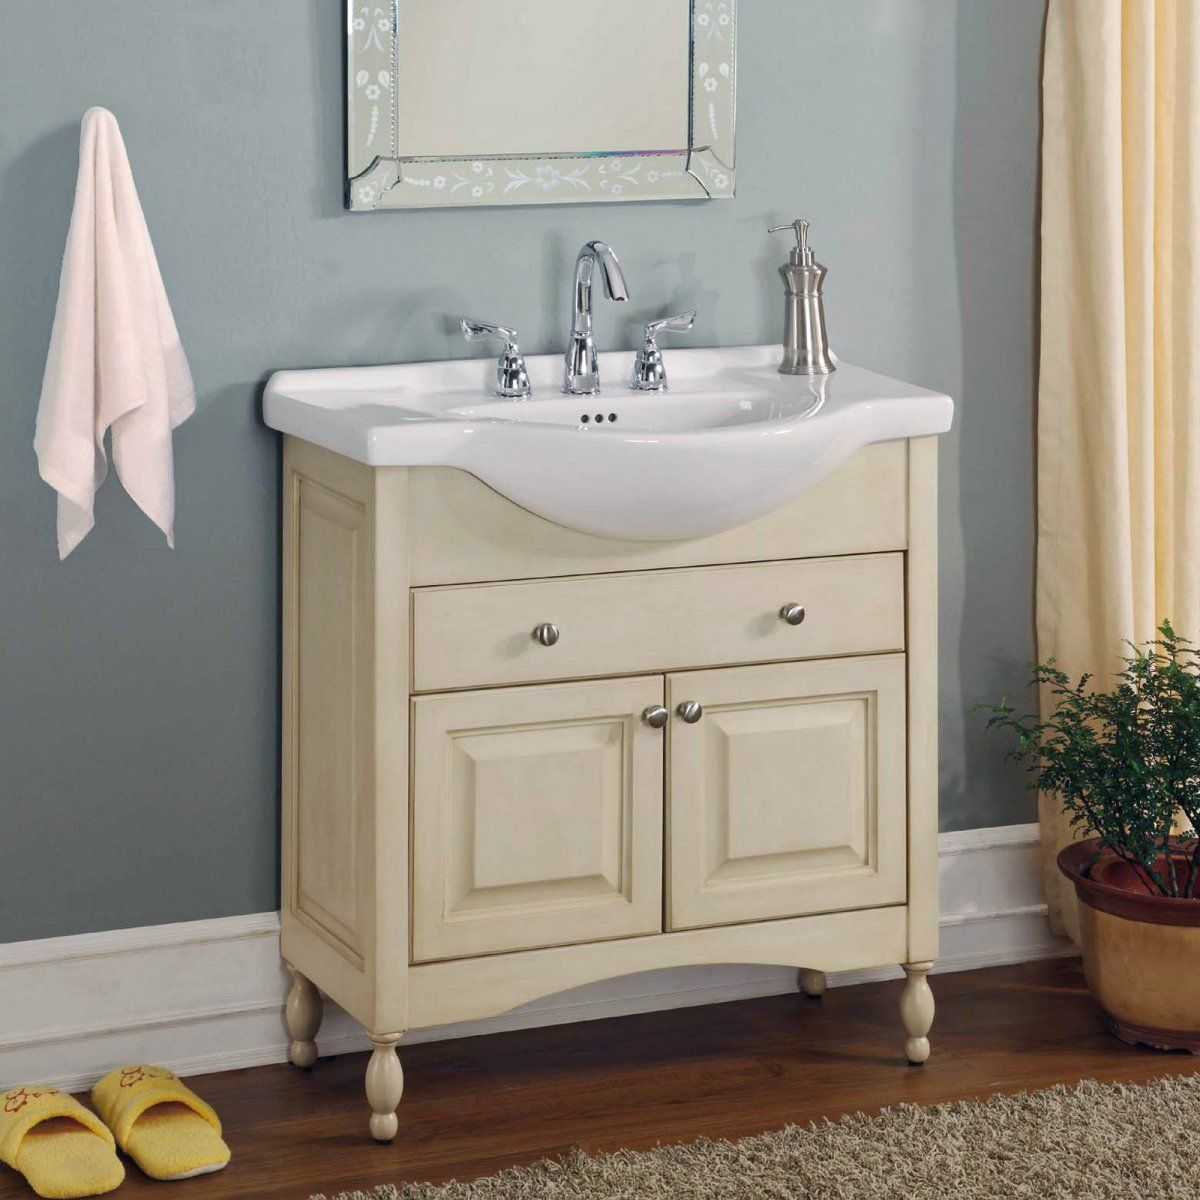 Empire Industries Windsor Single Bathroom Vanity 34w Inches